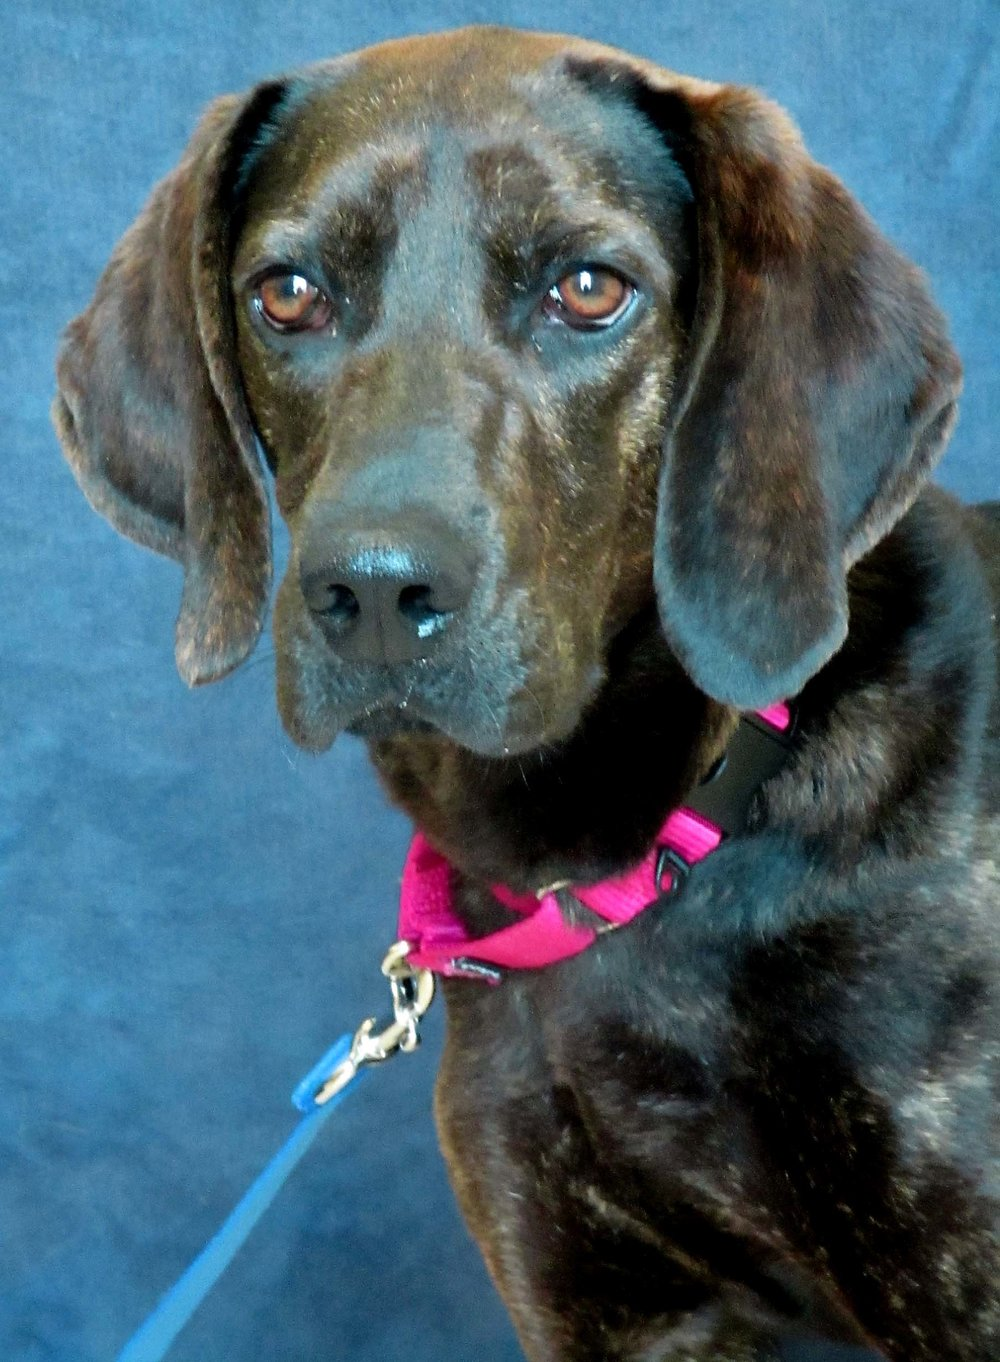 Sabrina is a 1-year-old Plott Hound Mix from Alabama. She can be sensitive to some handling so we are recommending older children. Sabrina may do well with cats and dogs; but she is very forward and interested in both, so confident pets may enjoy her company more. She looks forward to playing with squeaky toys in her new home!